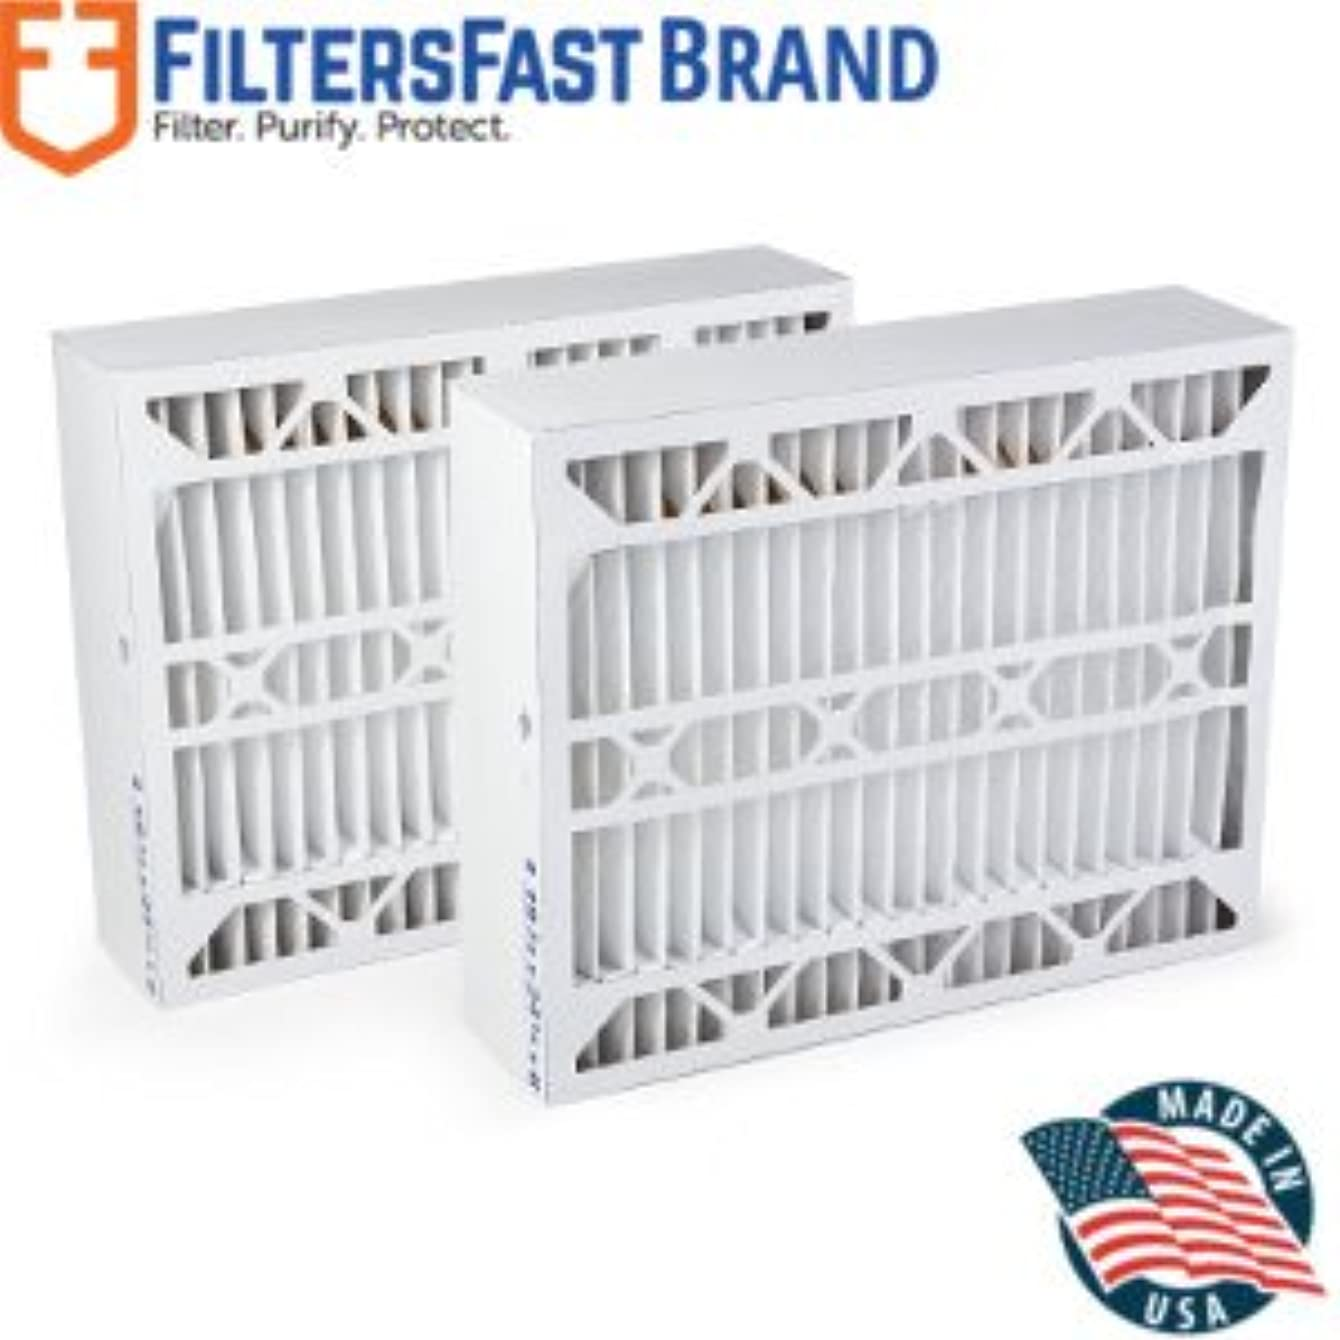 Filters Fast Compatible Replacement for Aprilaire SpaceGard 2400 Air Filter -MERV 13 2-Pack 16